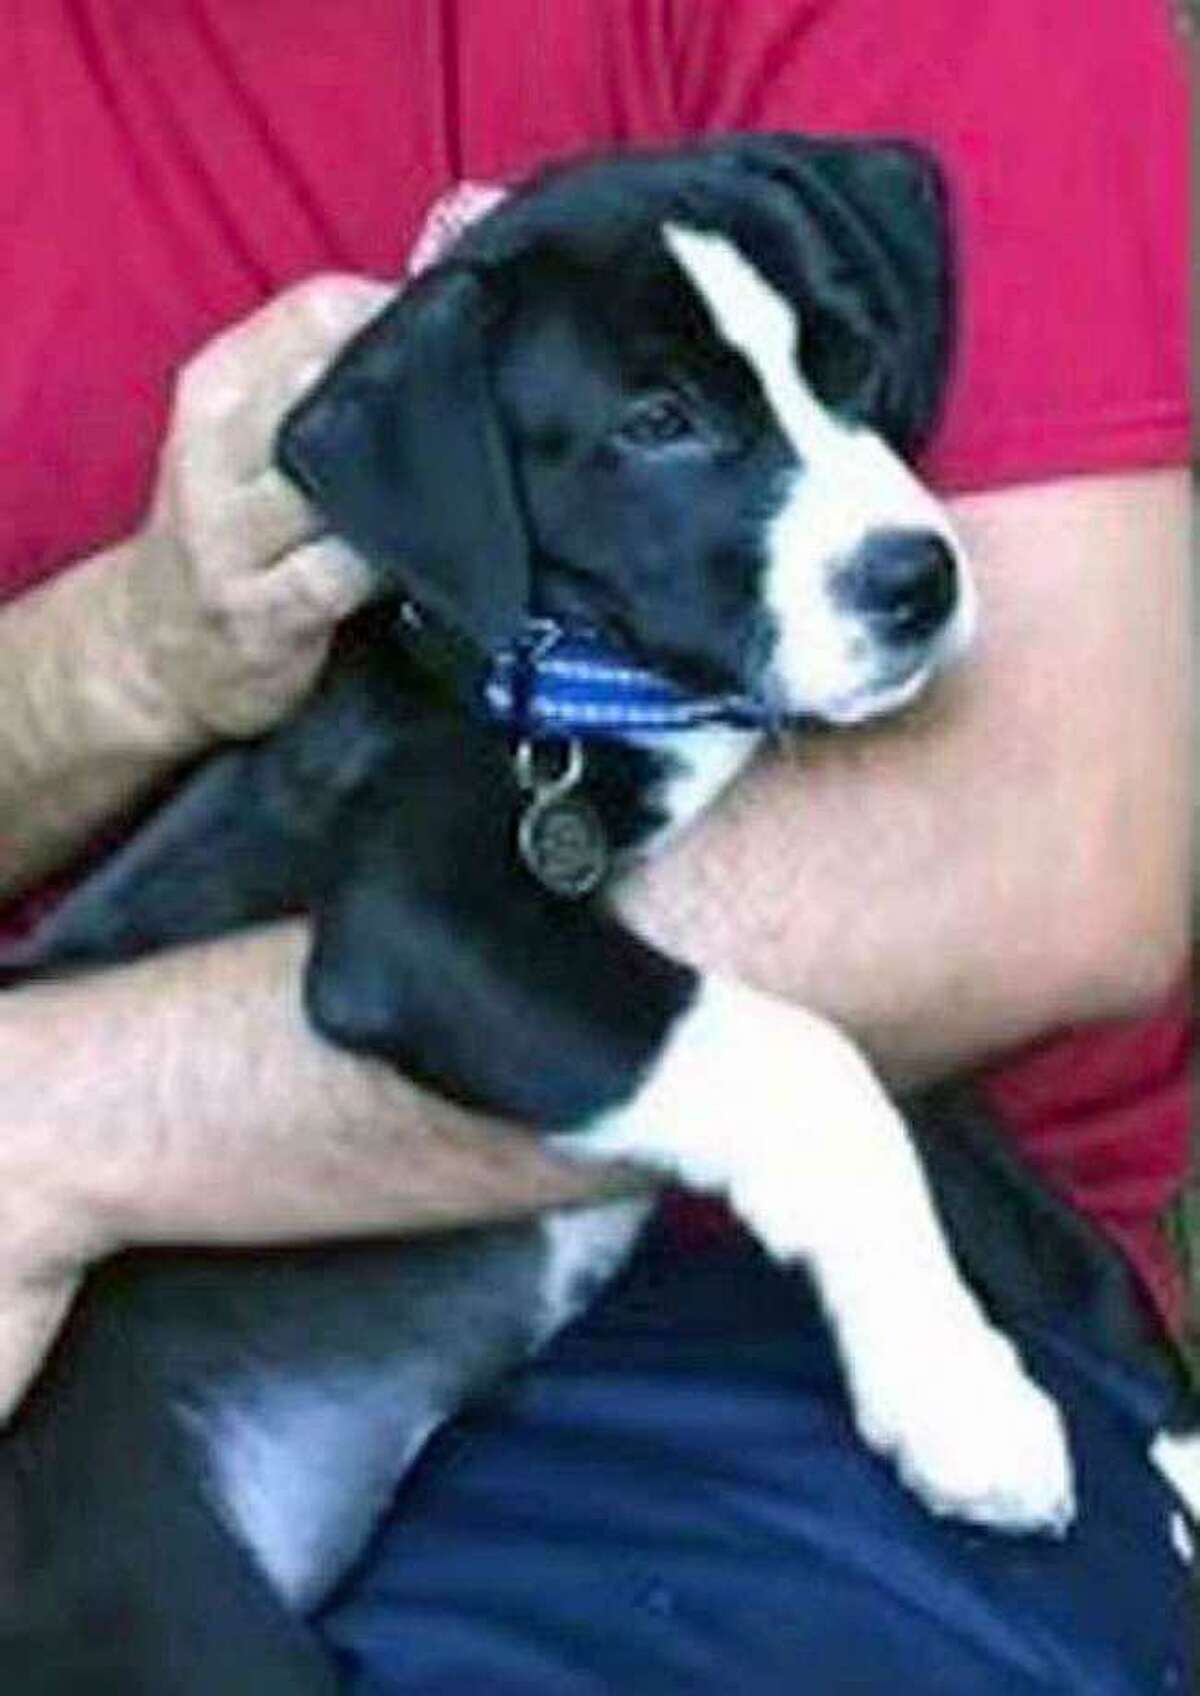 Ollie, the six-month old puppy that ran away after his owner was struck and killed Tuesday, has been found, Vernon police said Saturday. Ollie's owner, Andrew Aggarwala, 44, was walking Ollie near his house shortly before 3 p.m. Tuesday in the 100 block of Phoenix Street when he was hit by a driver, police said.